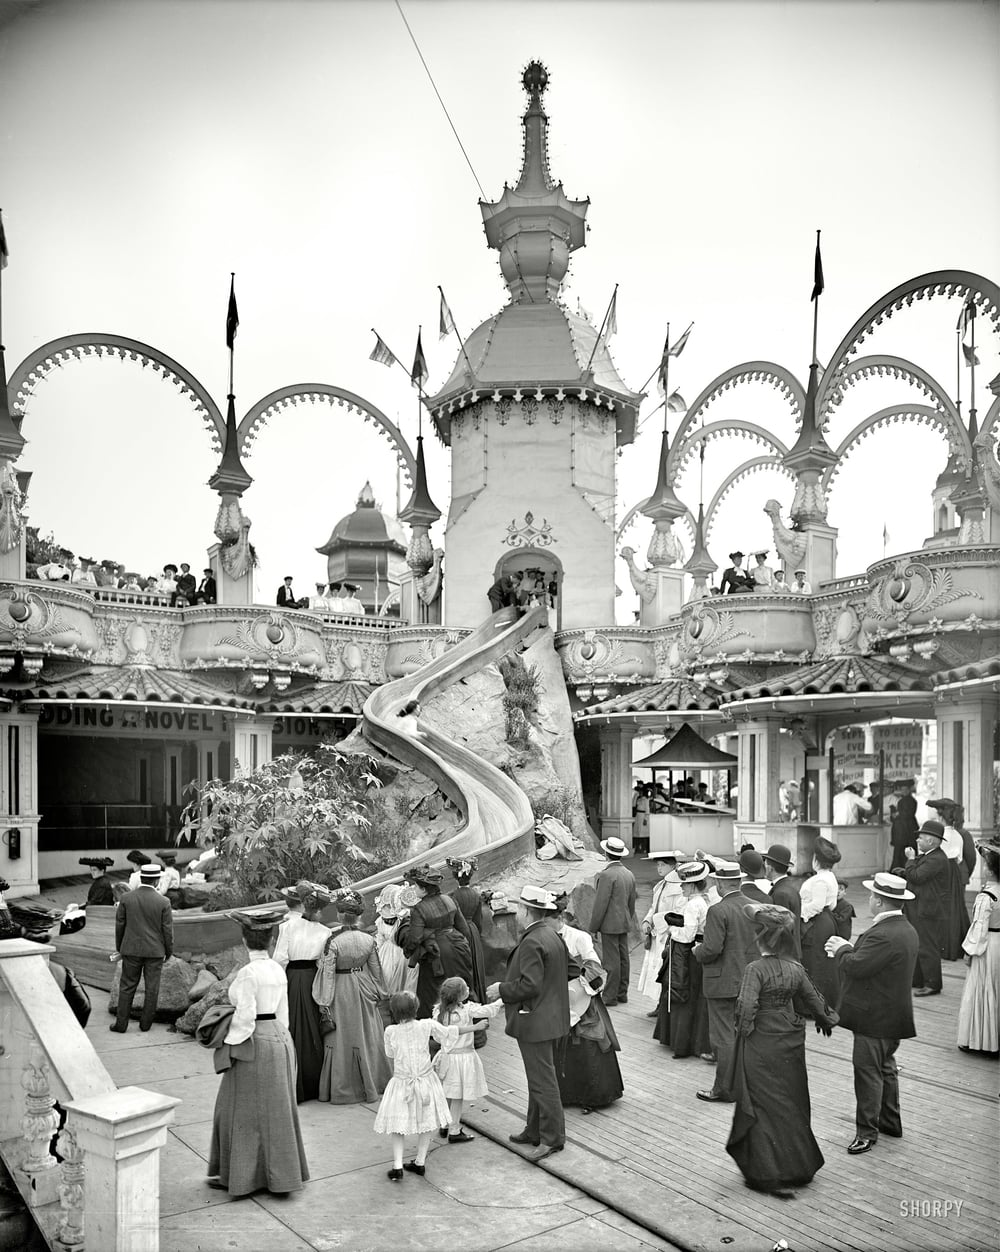 The Helter Skelter ride at Luna Park, Coney Island. 1905.  (h/t, Shorpy)